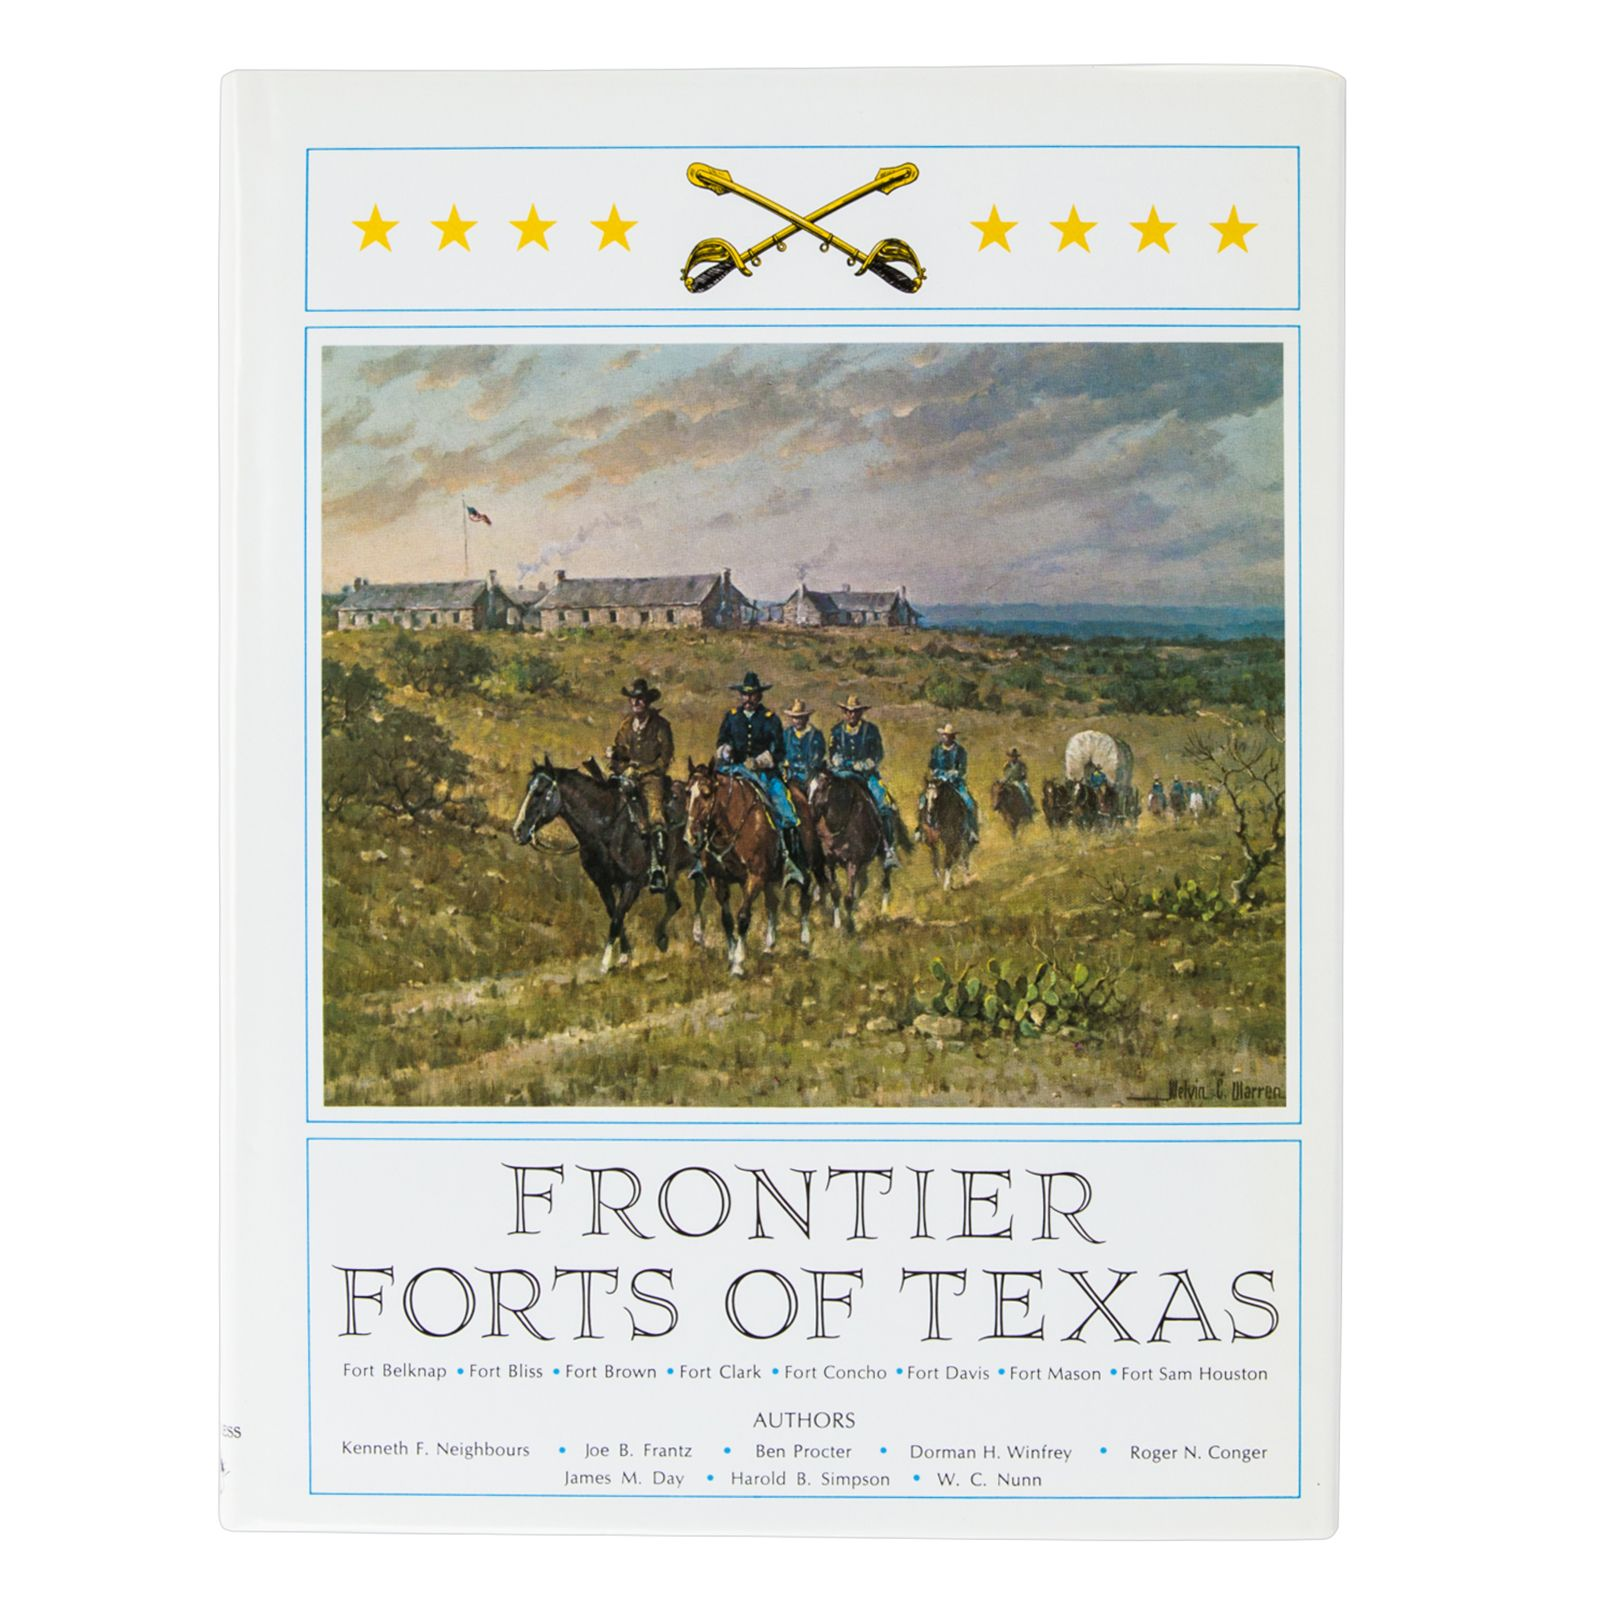 Frontier Forts of Texas